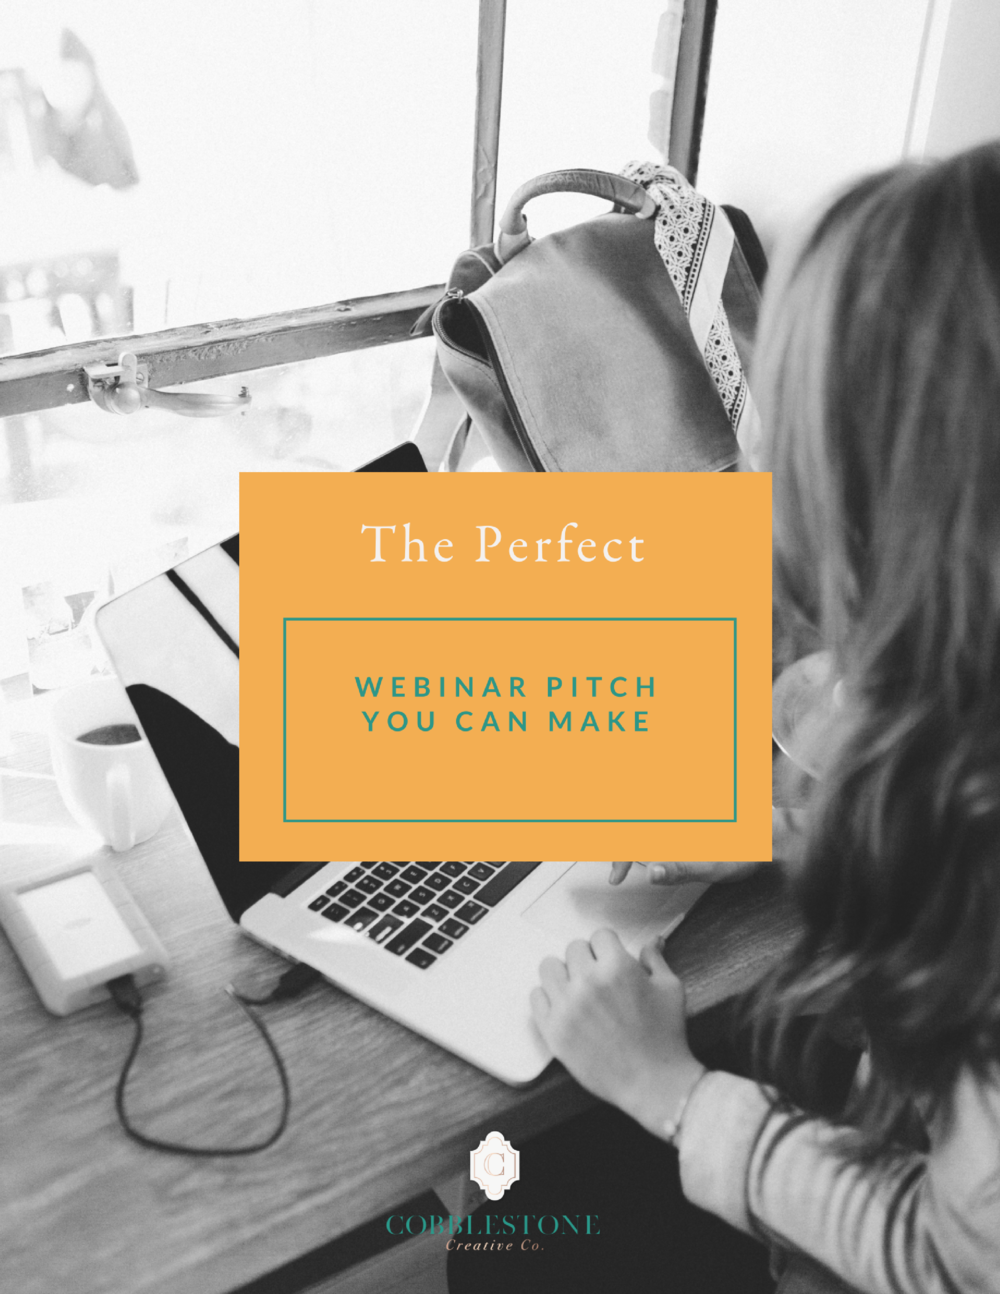 Selling on a webinar can feel extremely intimidating, especially if you've never done it before. Ready to rock your next webinar? Click through to discover how to make the perfect webinar pitch!